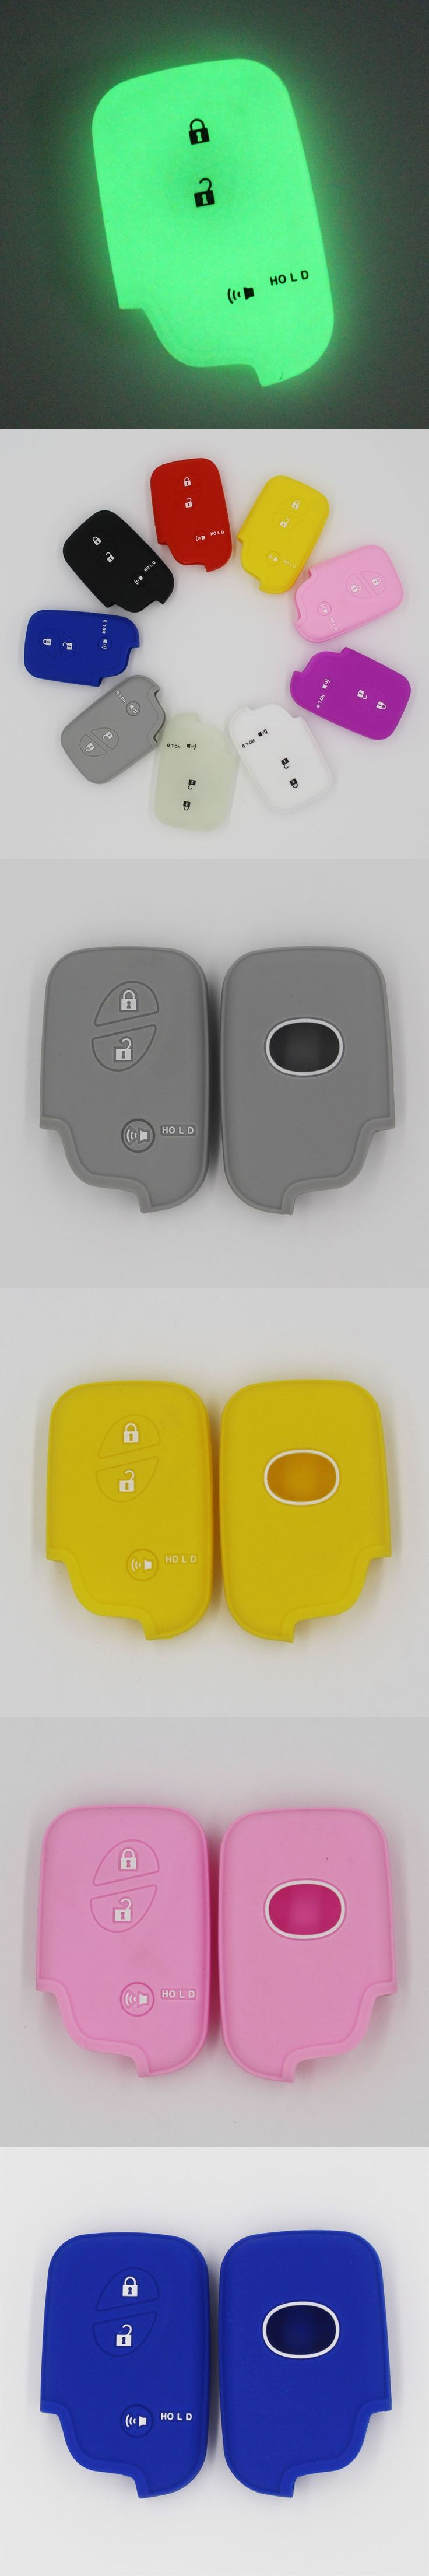 silicone rubber car key cover holder protective case for Lexus CT200h ES 300h IS250 GX400 RX270 RX450h RX350 3 button remote key